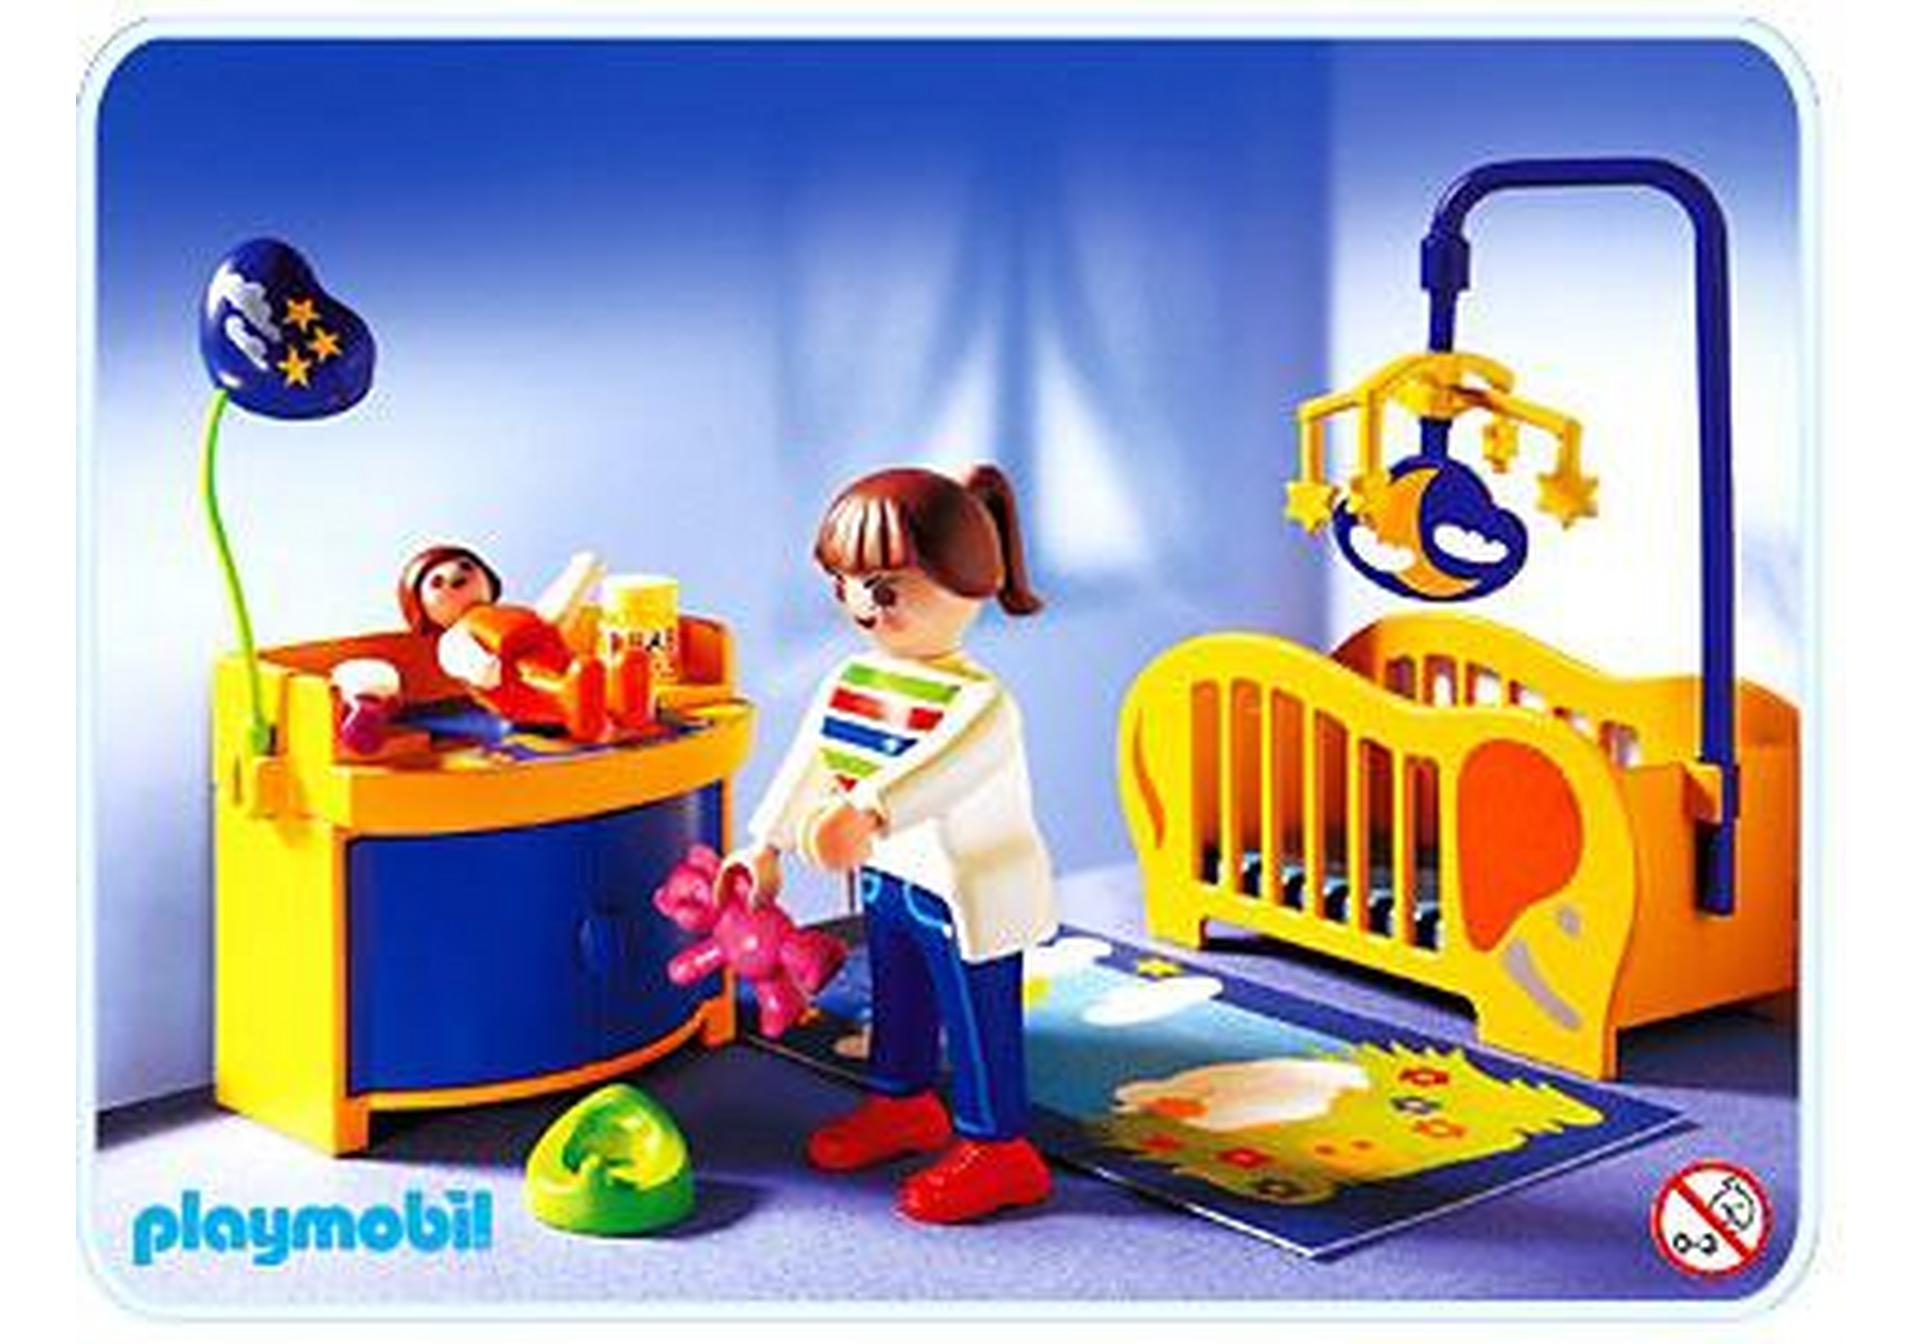 Maman chambre de b b 3207 b playmobil france for Kinderzimmer playmobil